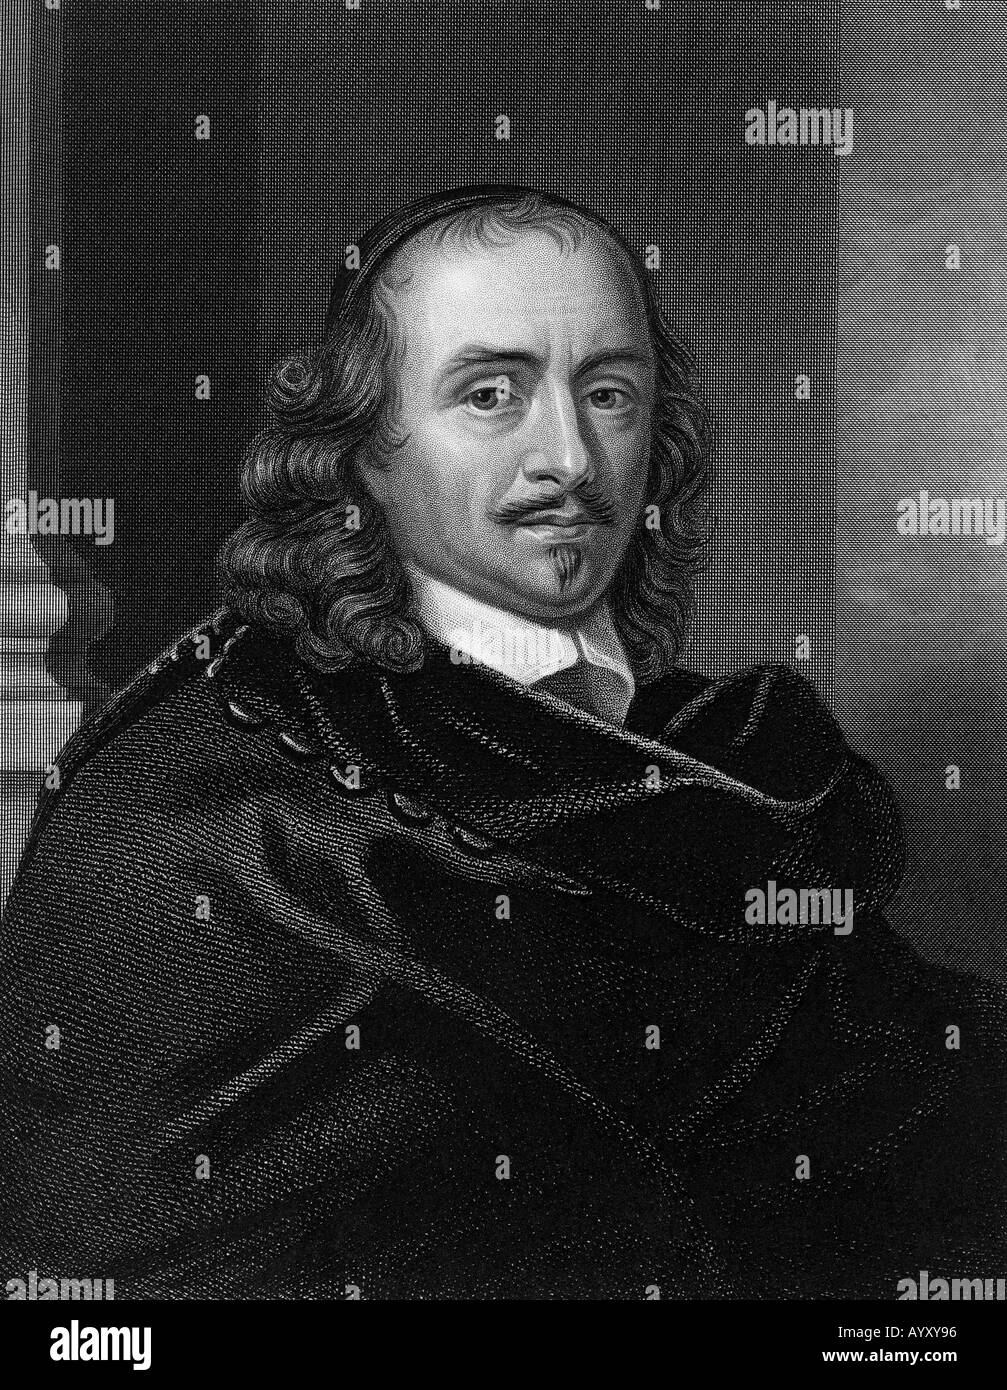 PIERRE CORNEILLE  French dramatist 1606 to 1684 - Stock Image